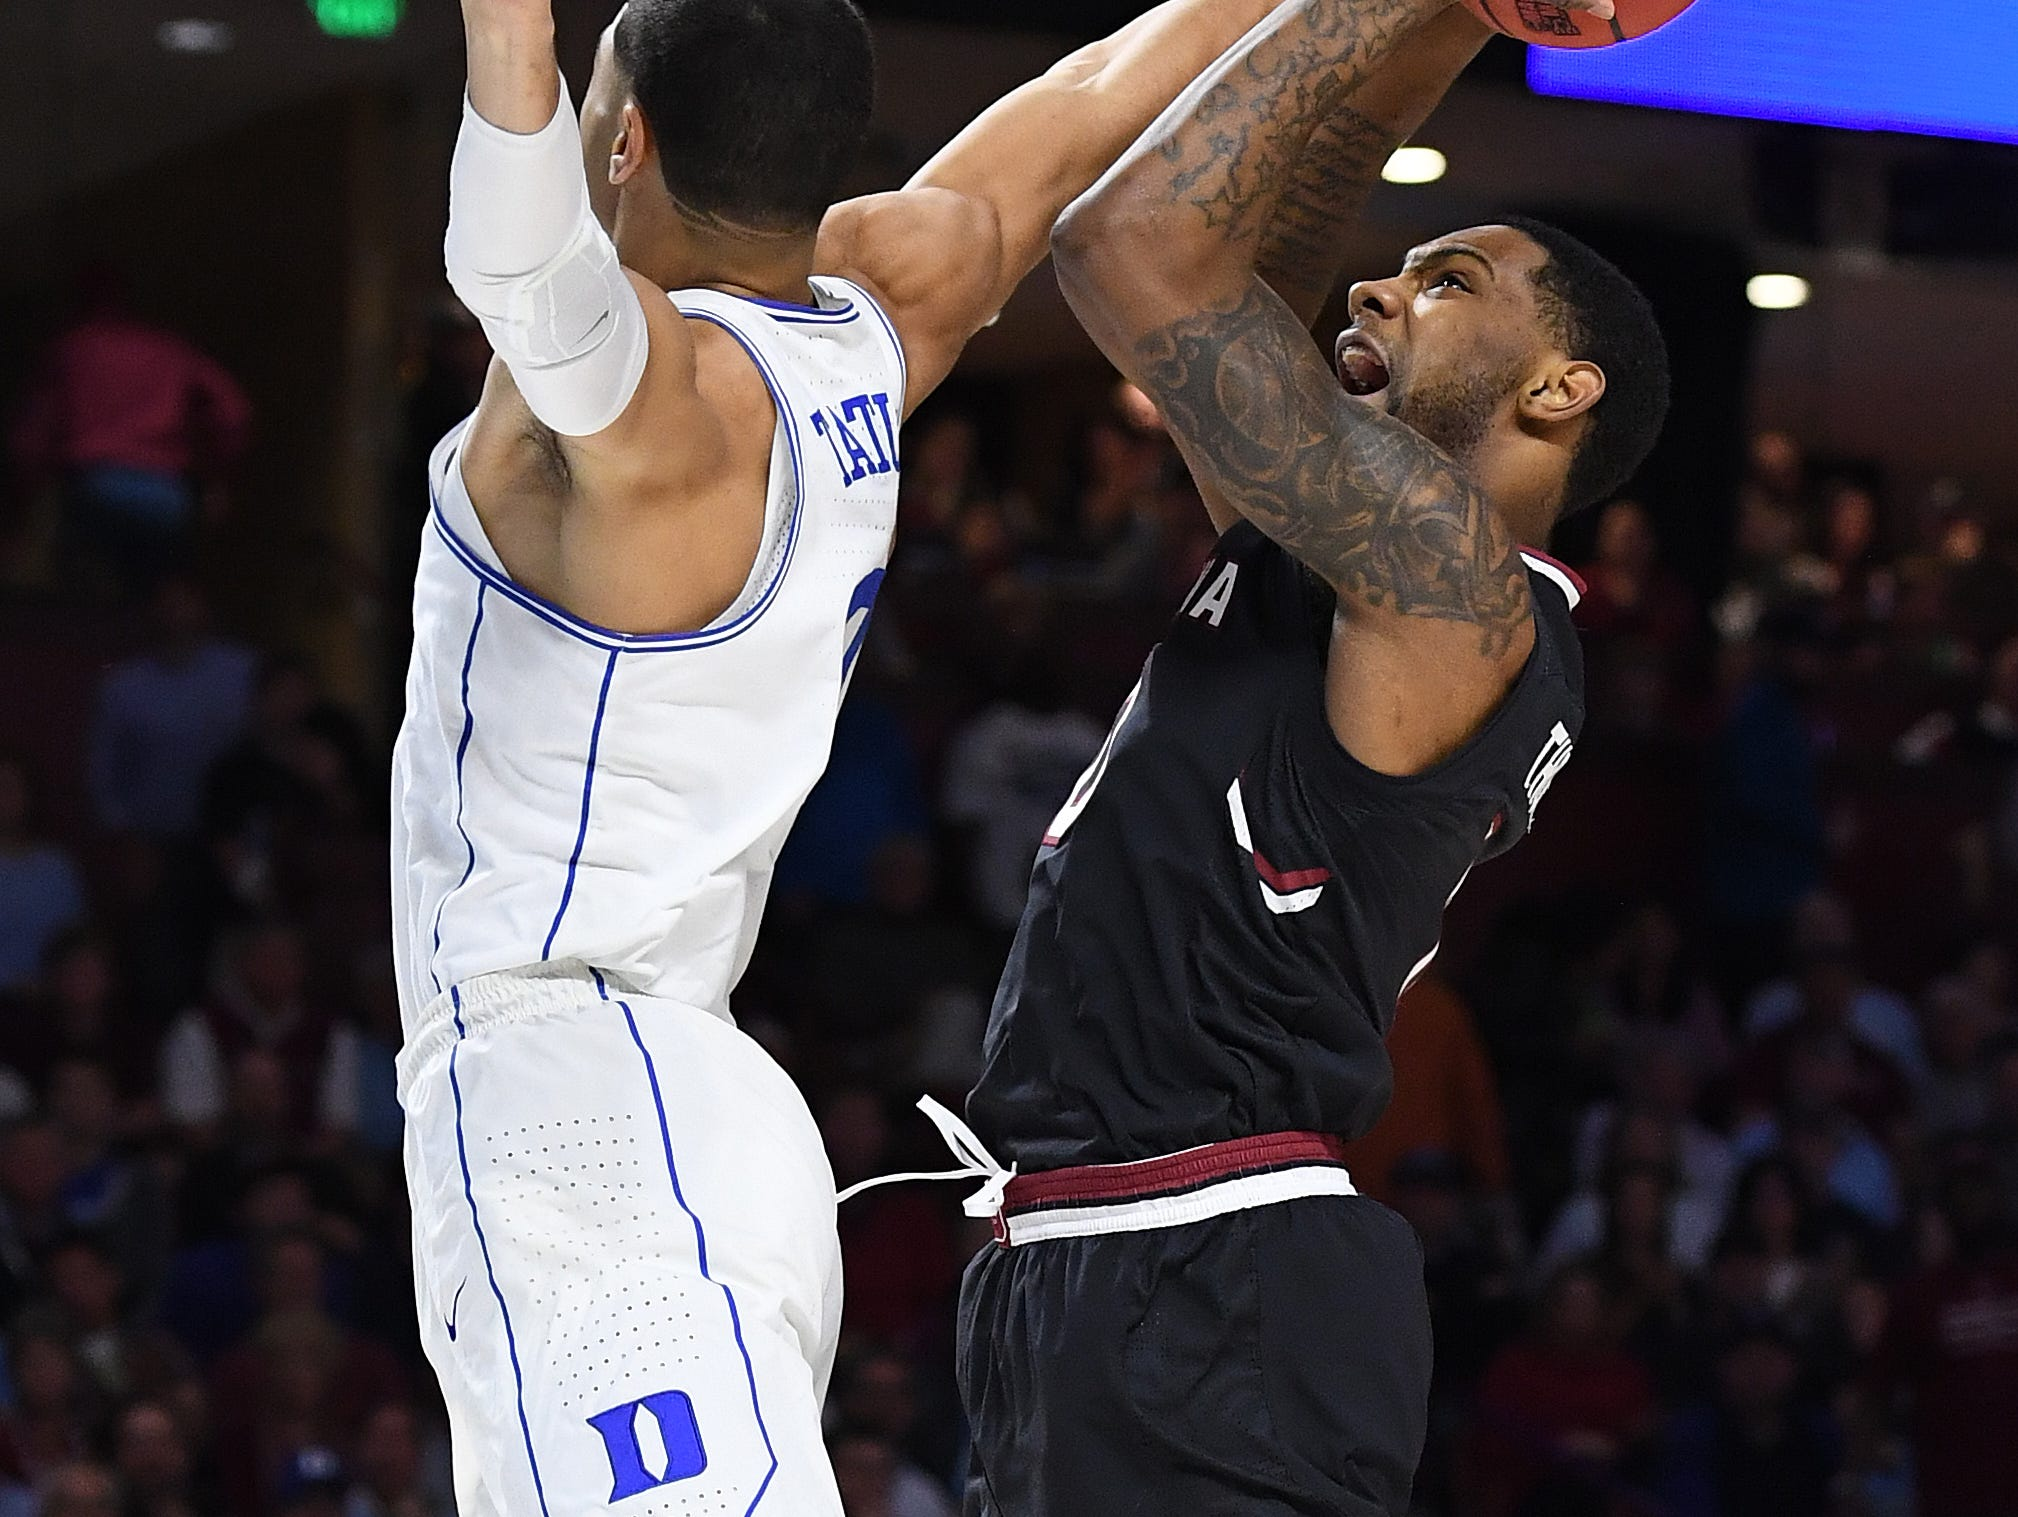 South Carolina guard Sindarius Thornwell (0) tries to shoot over Duke forward Jayson Tatum (0) during the 2nd round of the NCAA Tournament at Bon Secours Wellness Arena in downtown Greenville on Sunday, March 19, 2017.